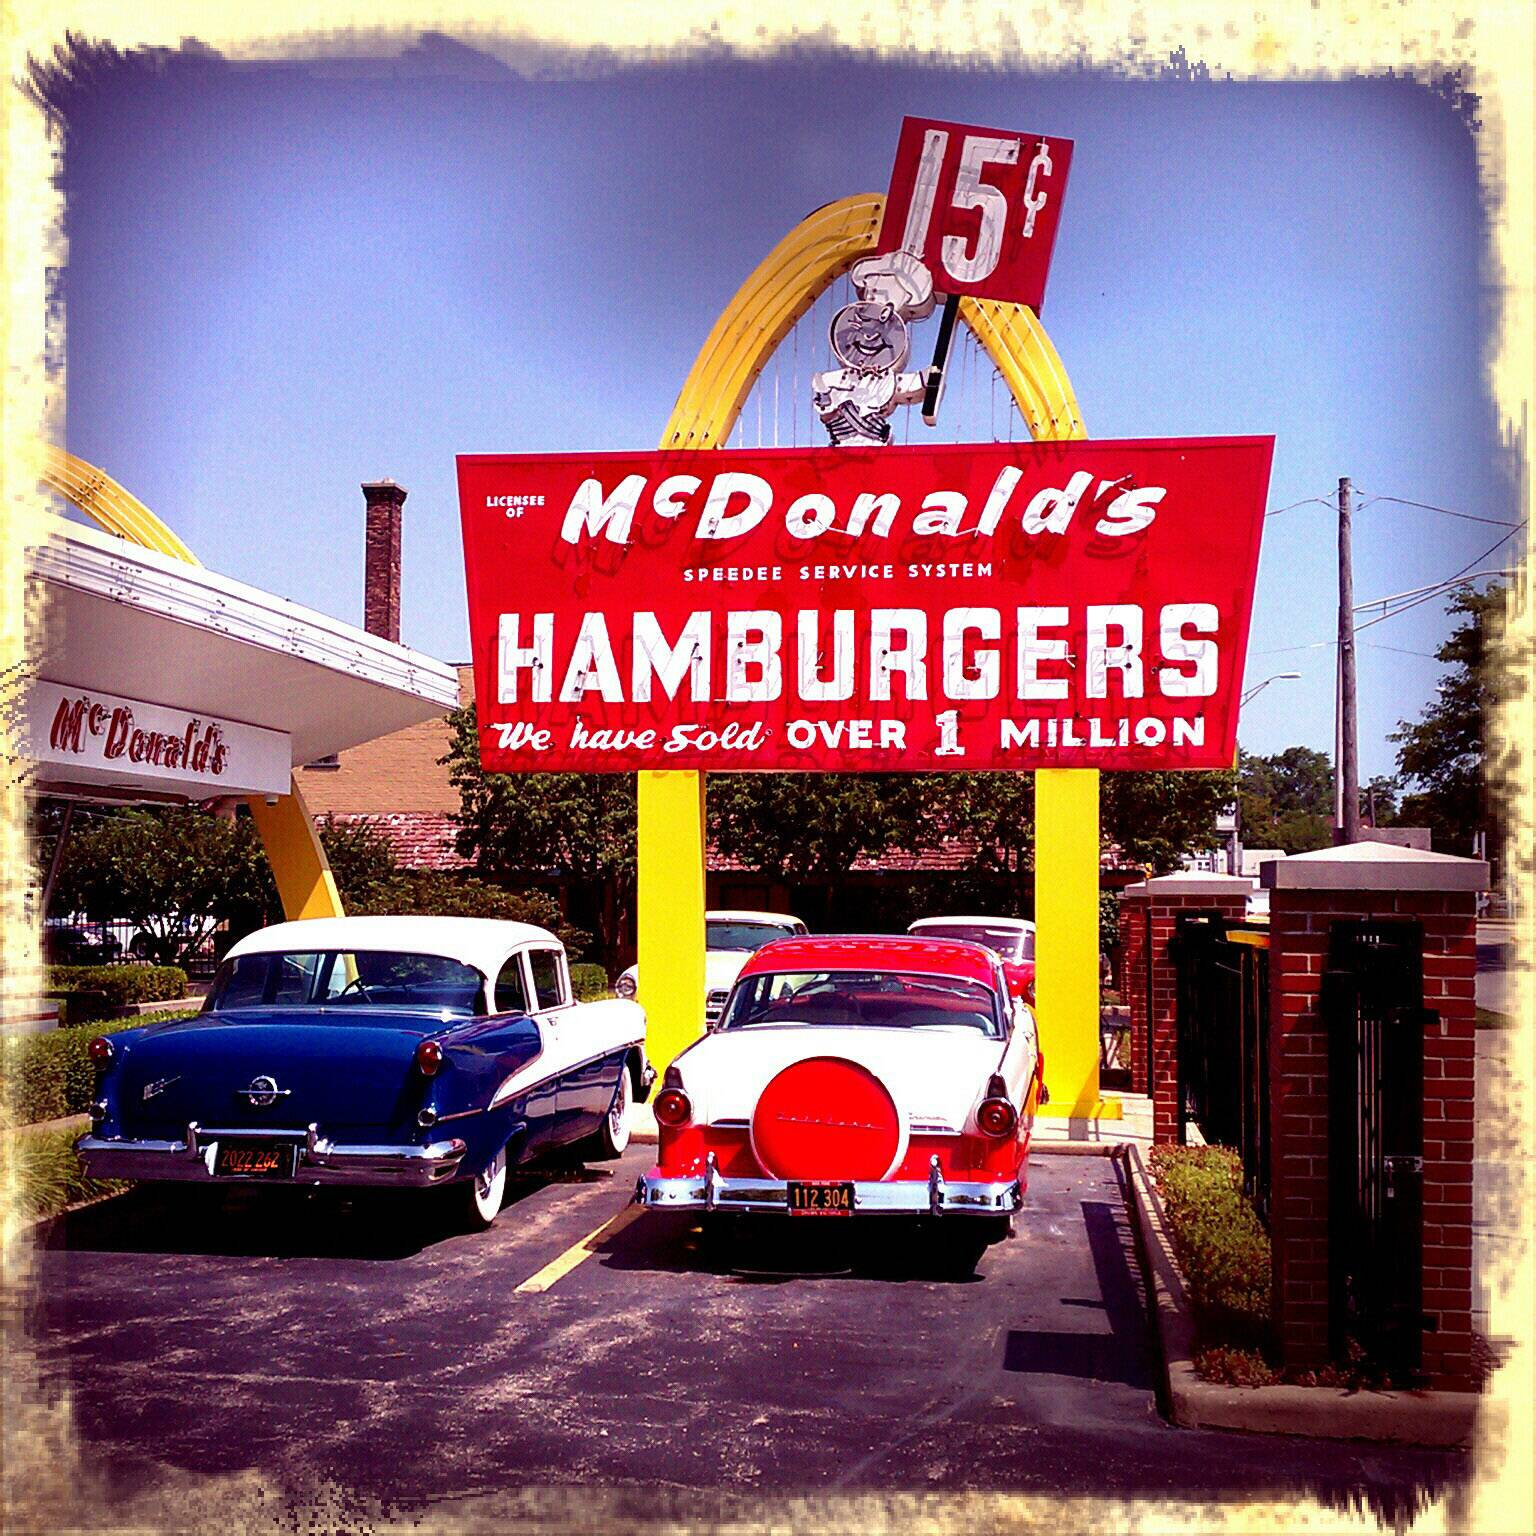 The car's were added to the McDonald's Museum in Des Plaines sometime after it ceased being an operating restaurant in 1984. Ray Kroc first opened for business there on April 15, 1955.